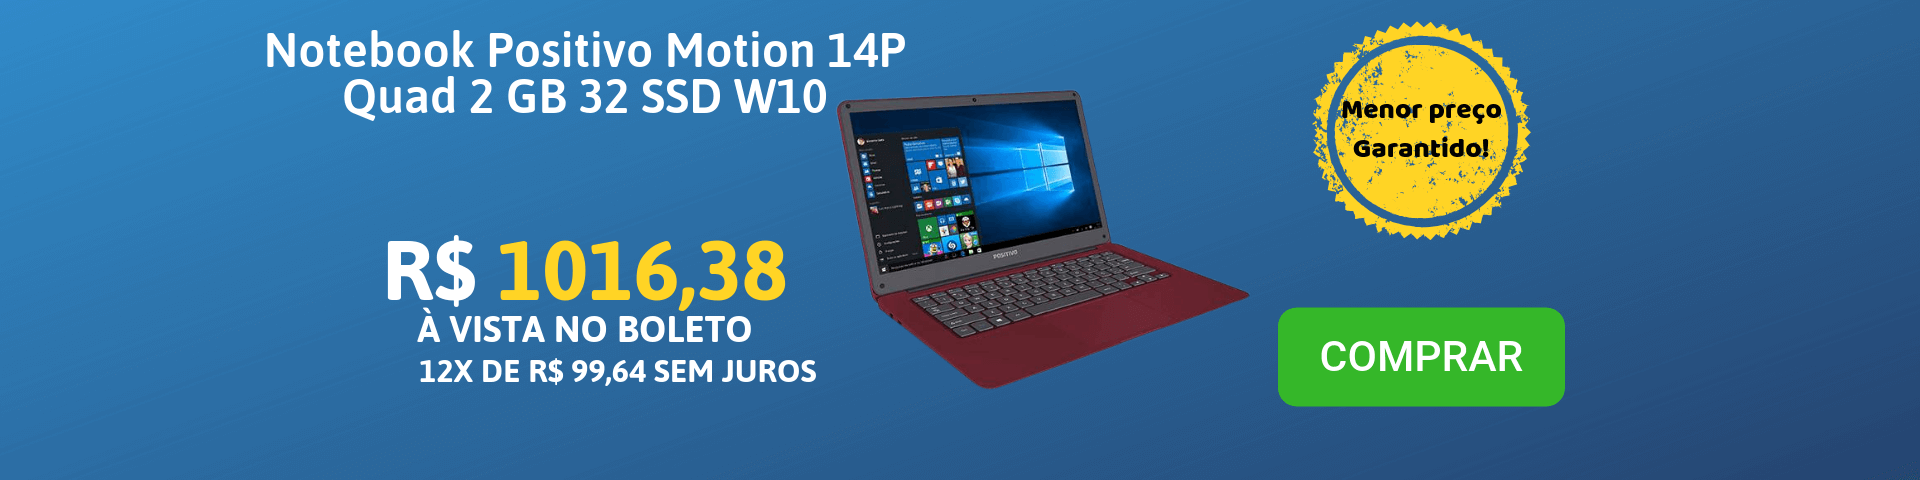 NOTEBOOK POSITIVO MOTION 14P QUAD 2GB 32SSD W10 - 3001298